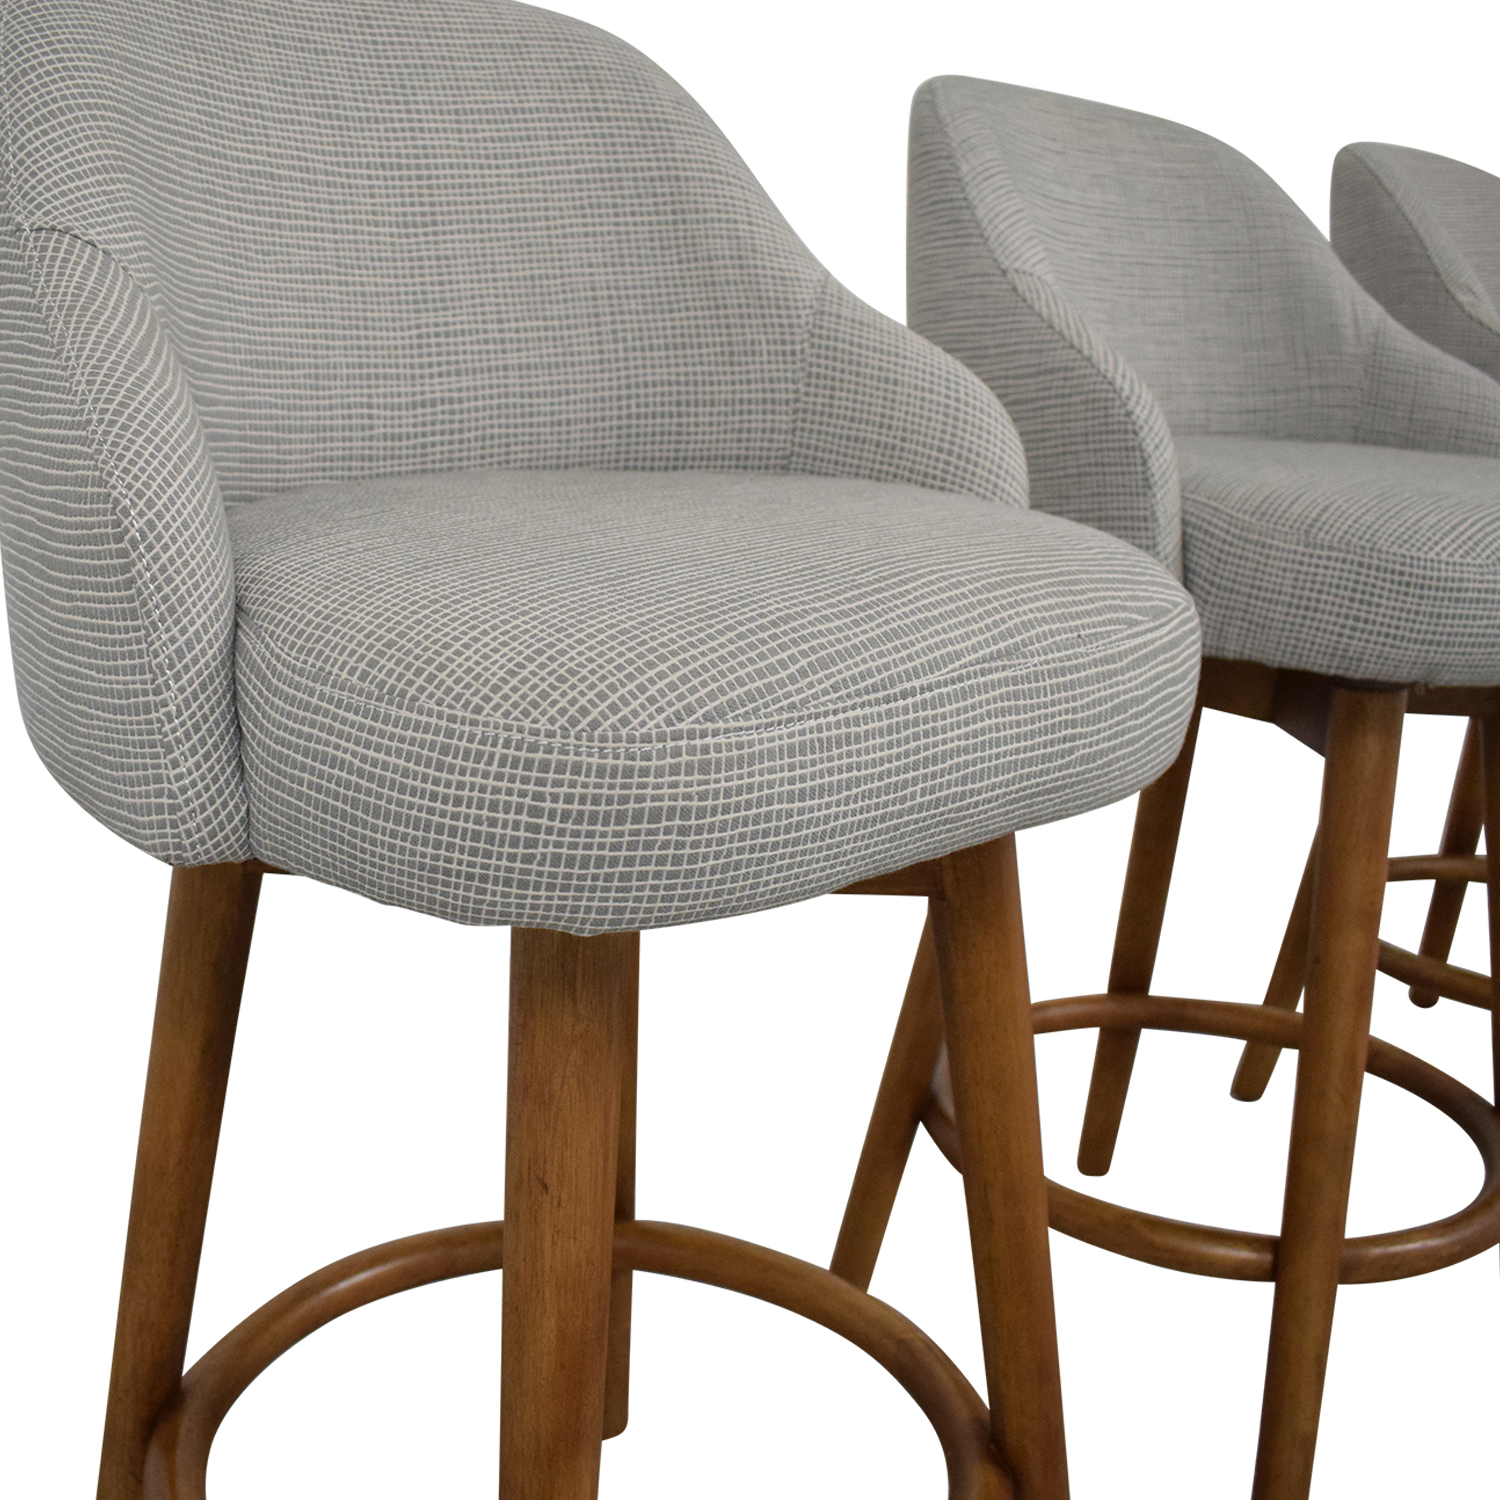 West Elm West Elm Mid-Century Swivel Upholstered Stools second hand